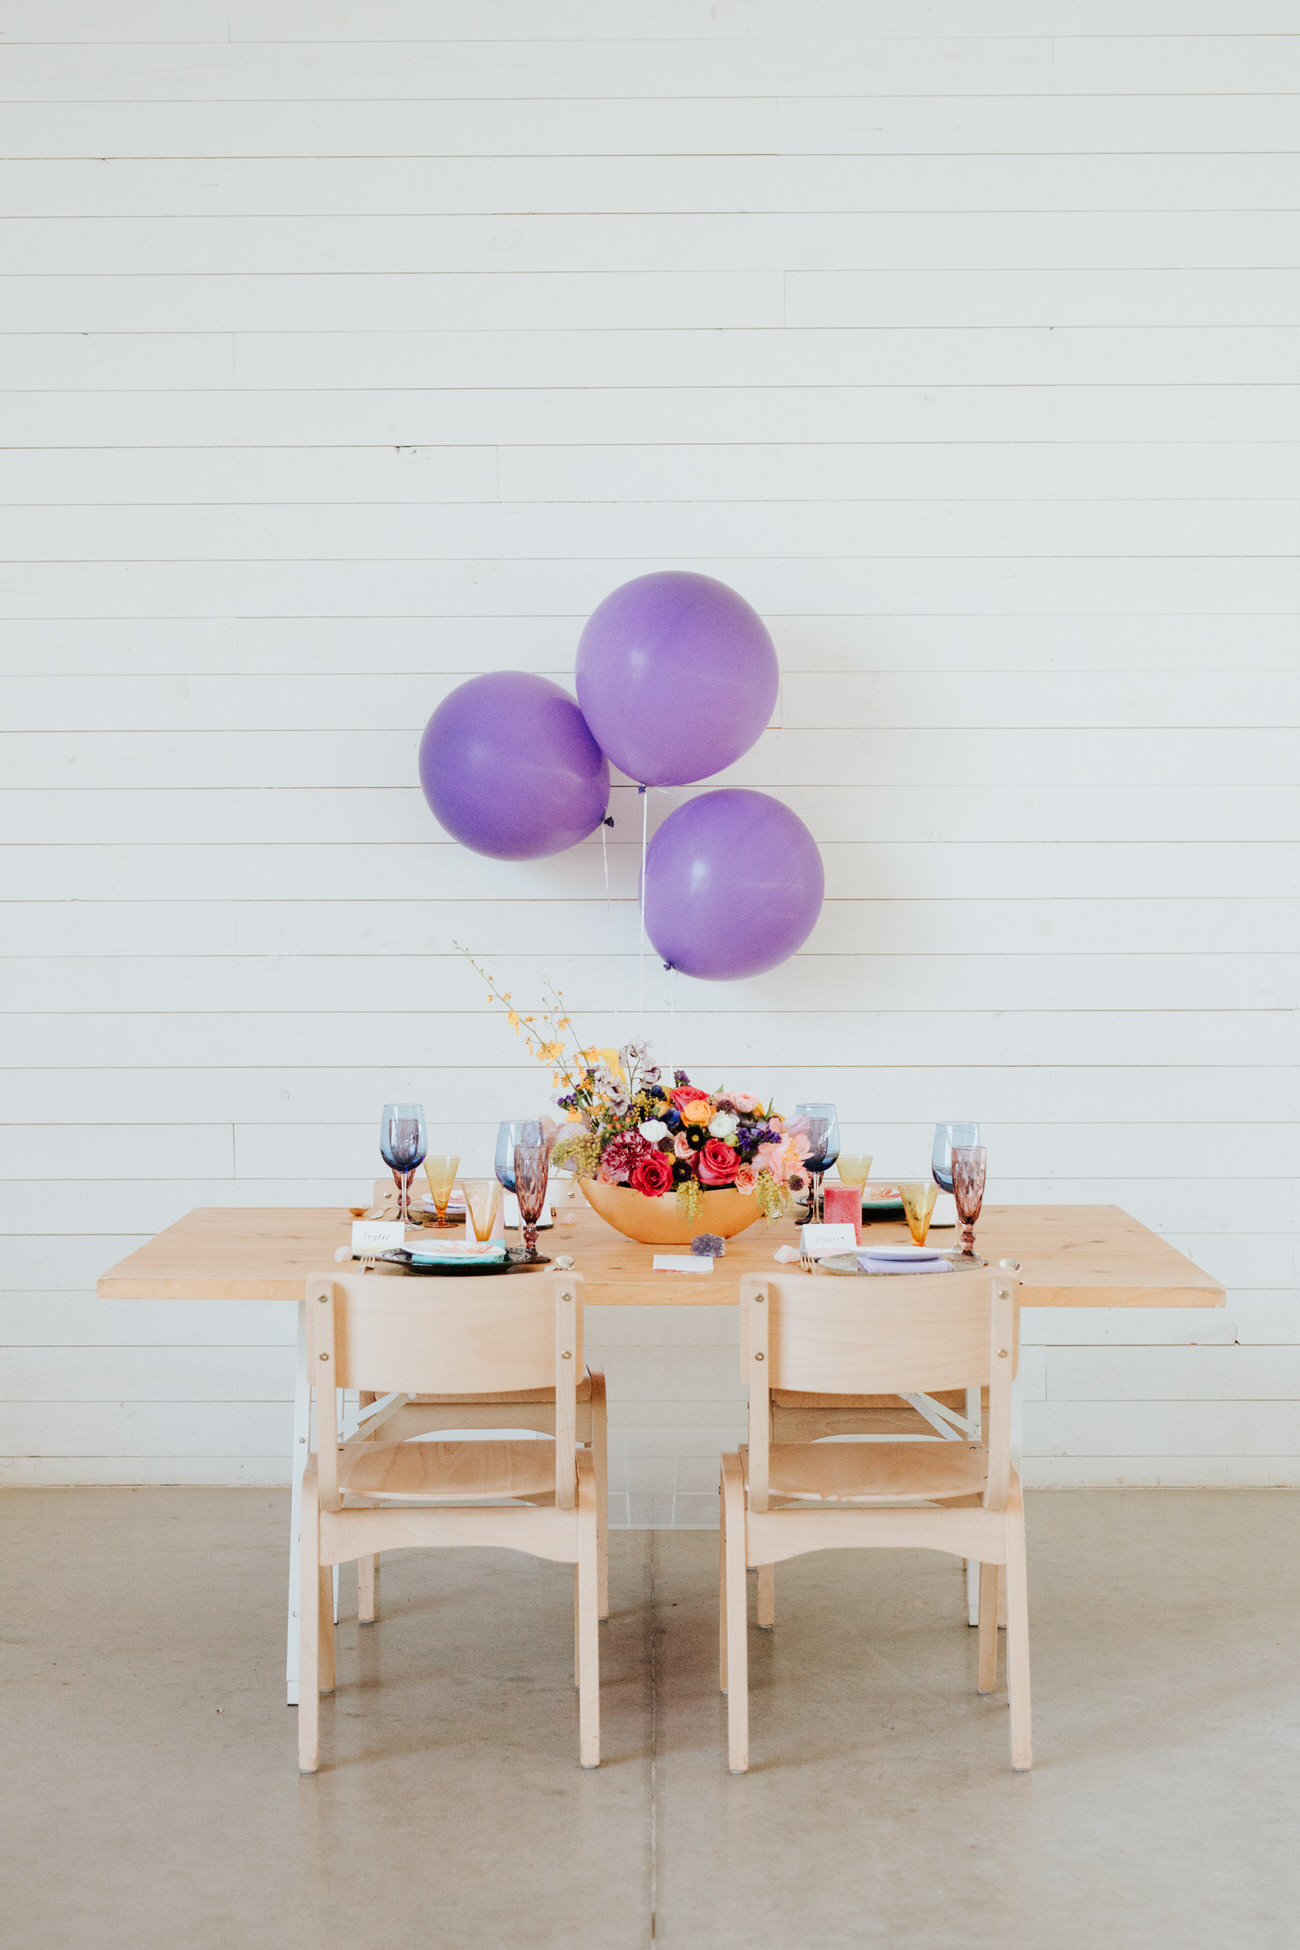 Table with purple balloons at Prospect House